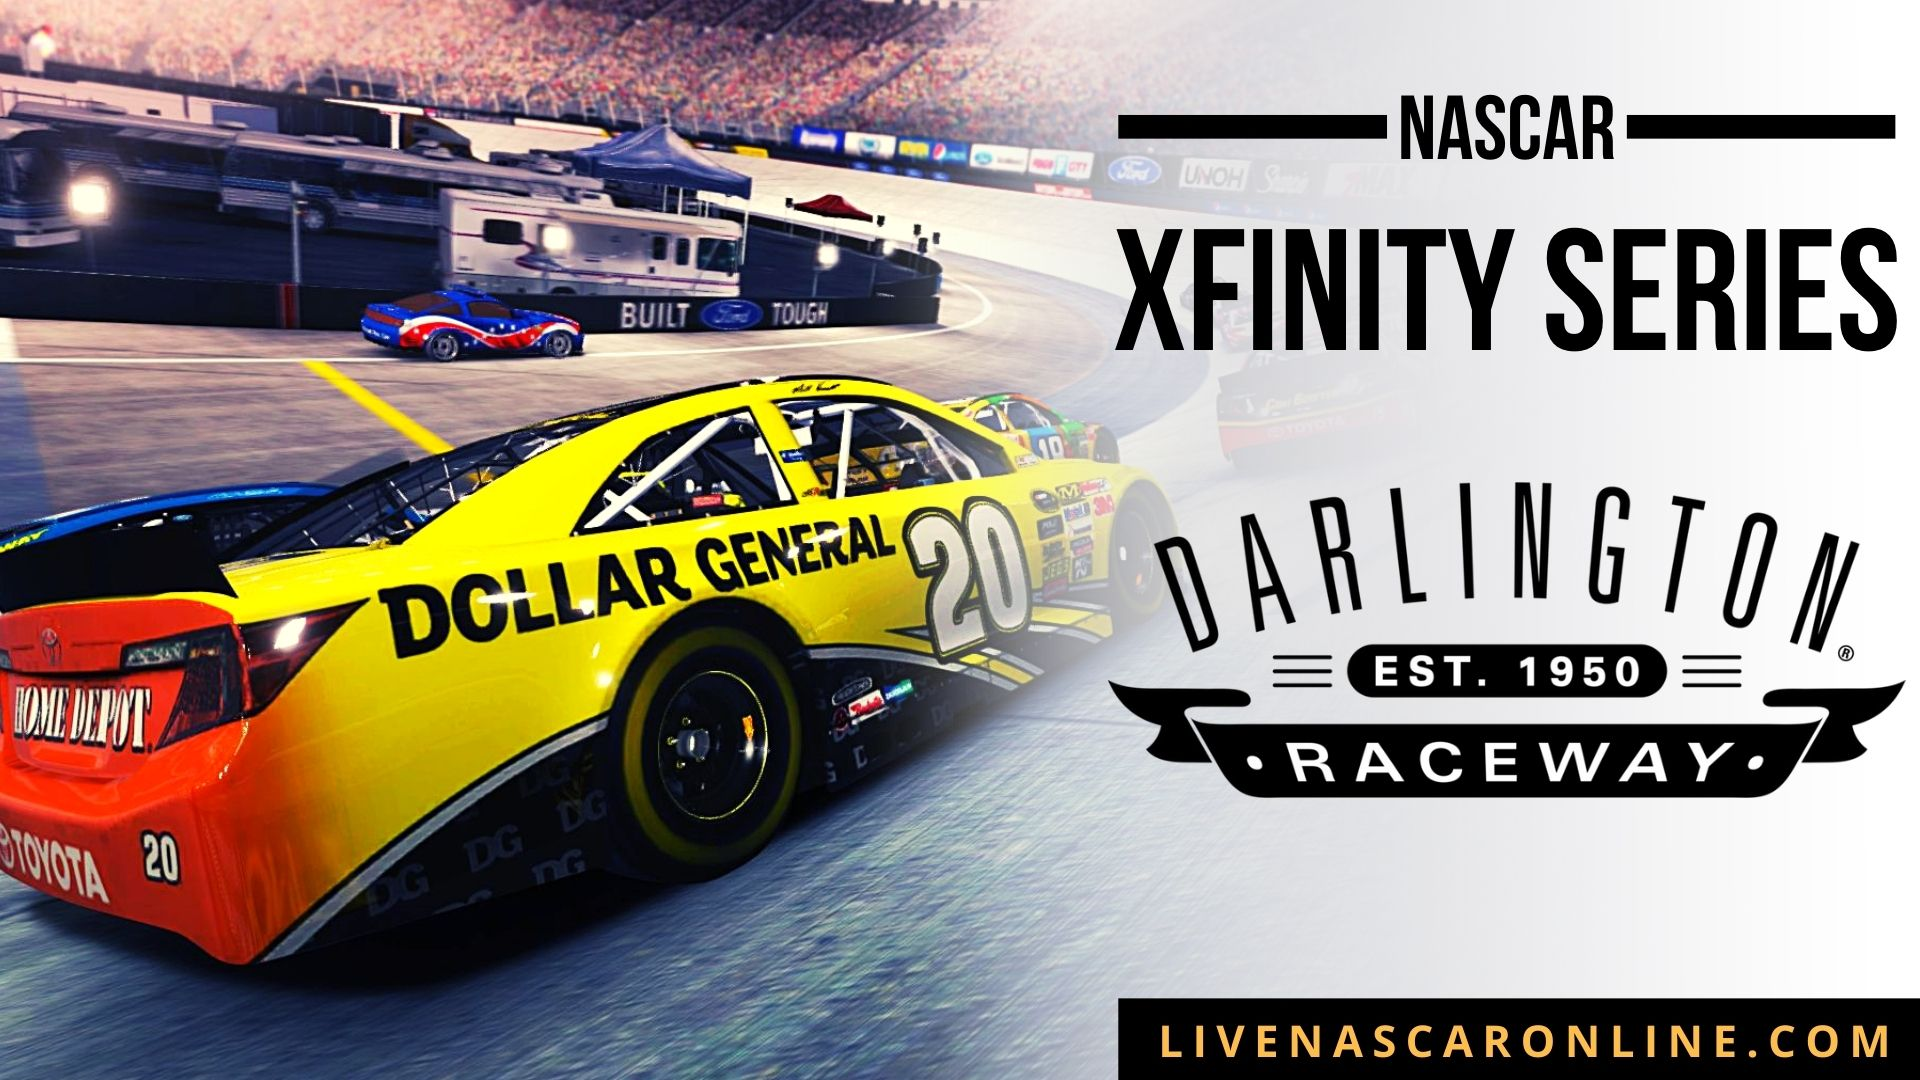 NASCAR Xfinity Race 2 at Darlington Live Stream 2021